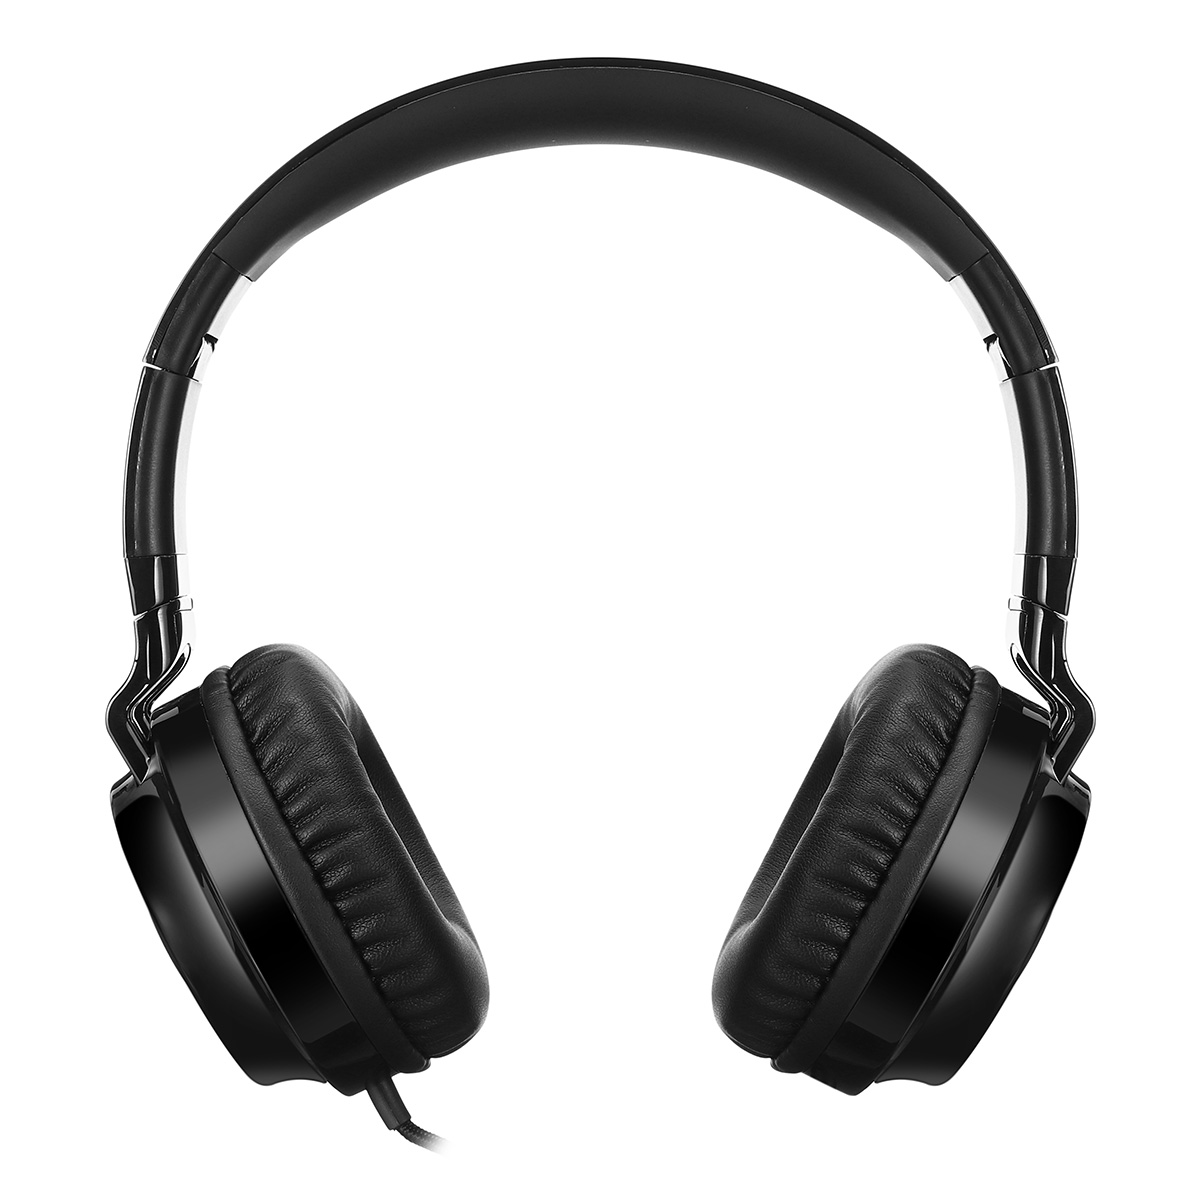 Pincun C60 Foldable Wired Headset Headphone 4D Stereo Portable 3.5mm Wired Over-ear Headset with Mic